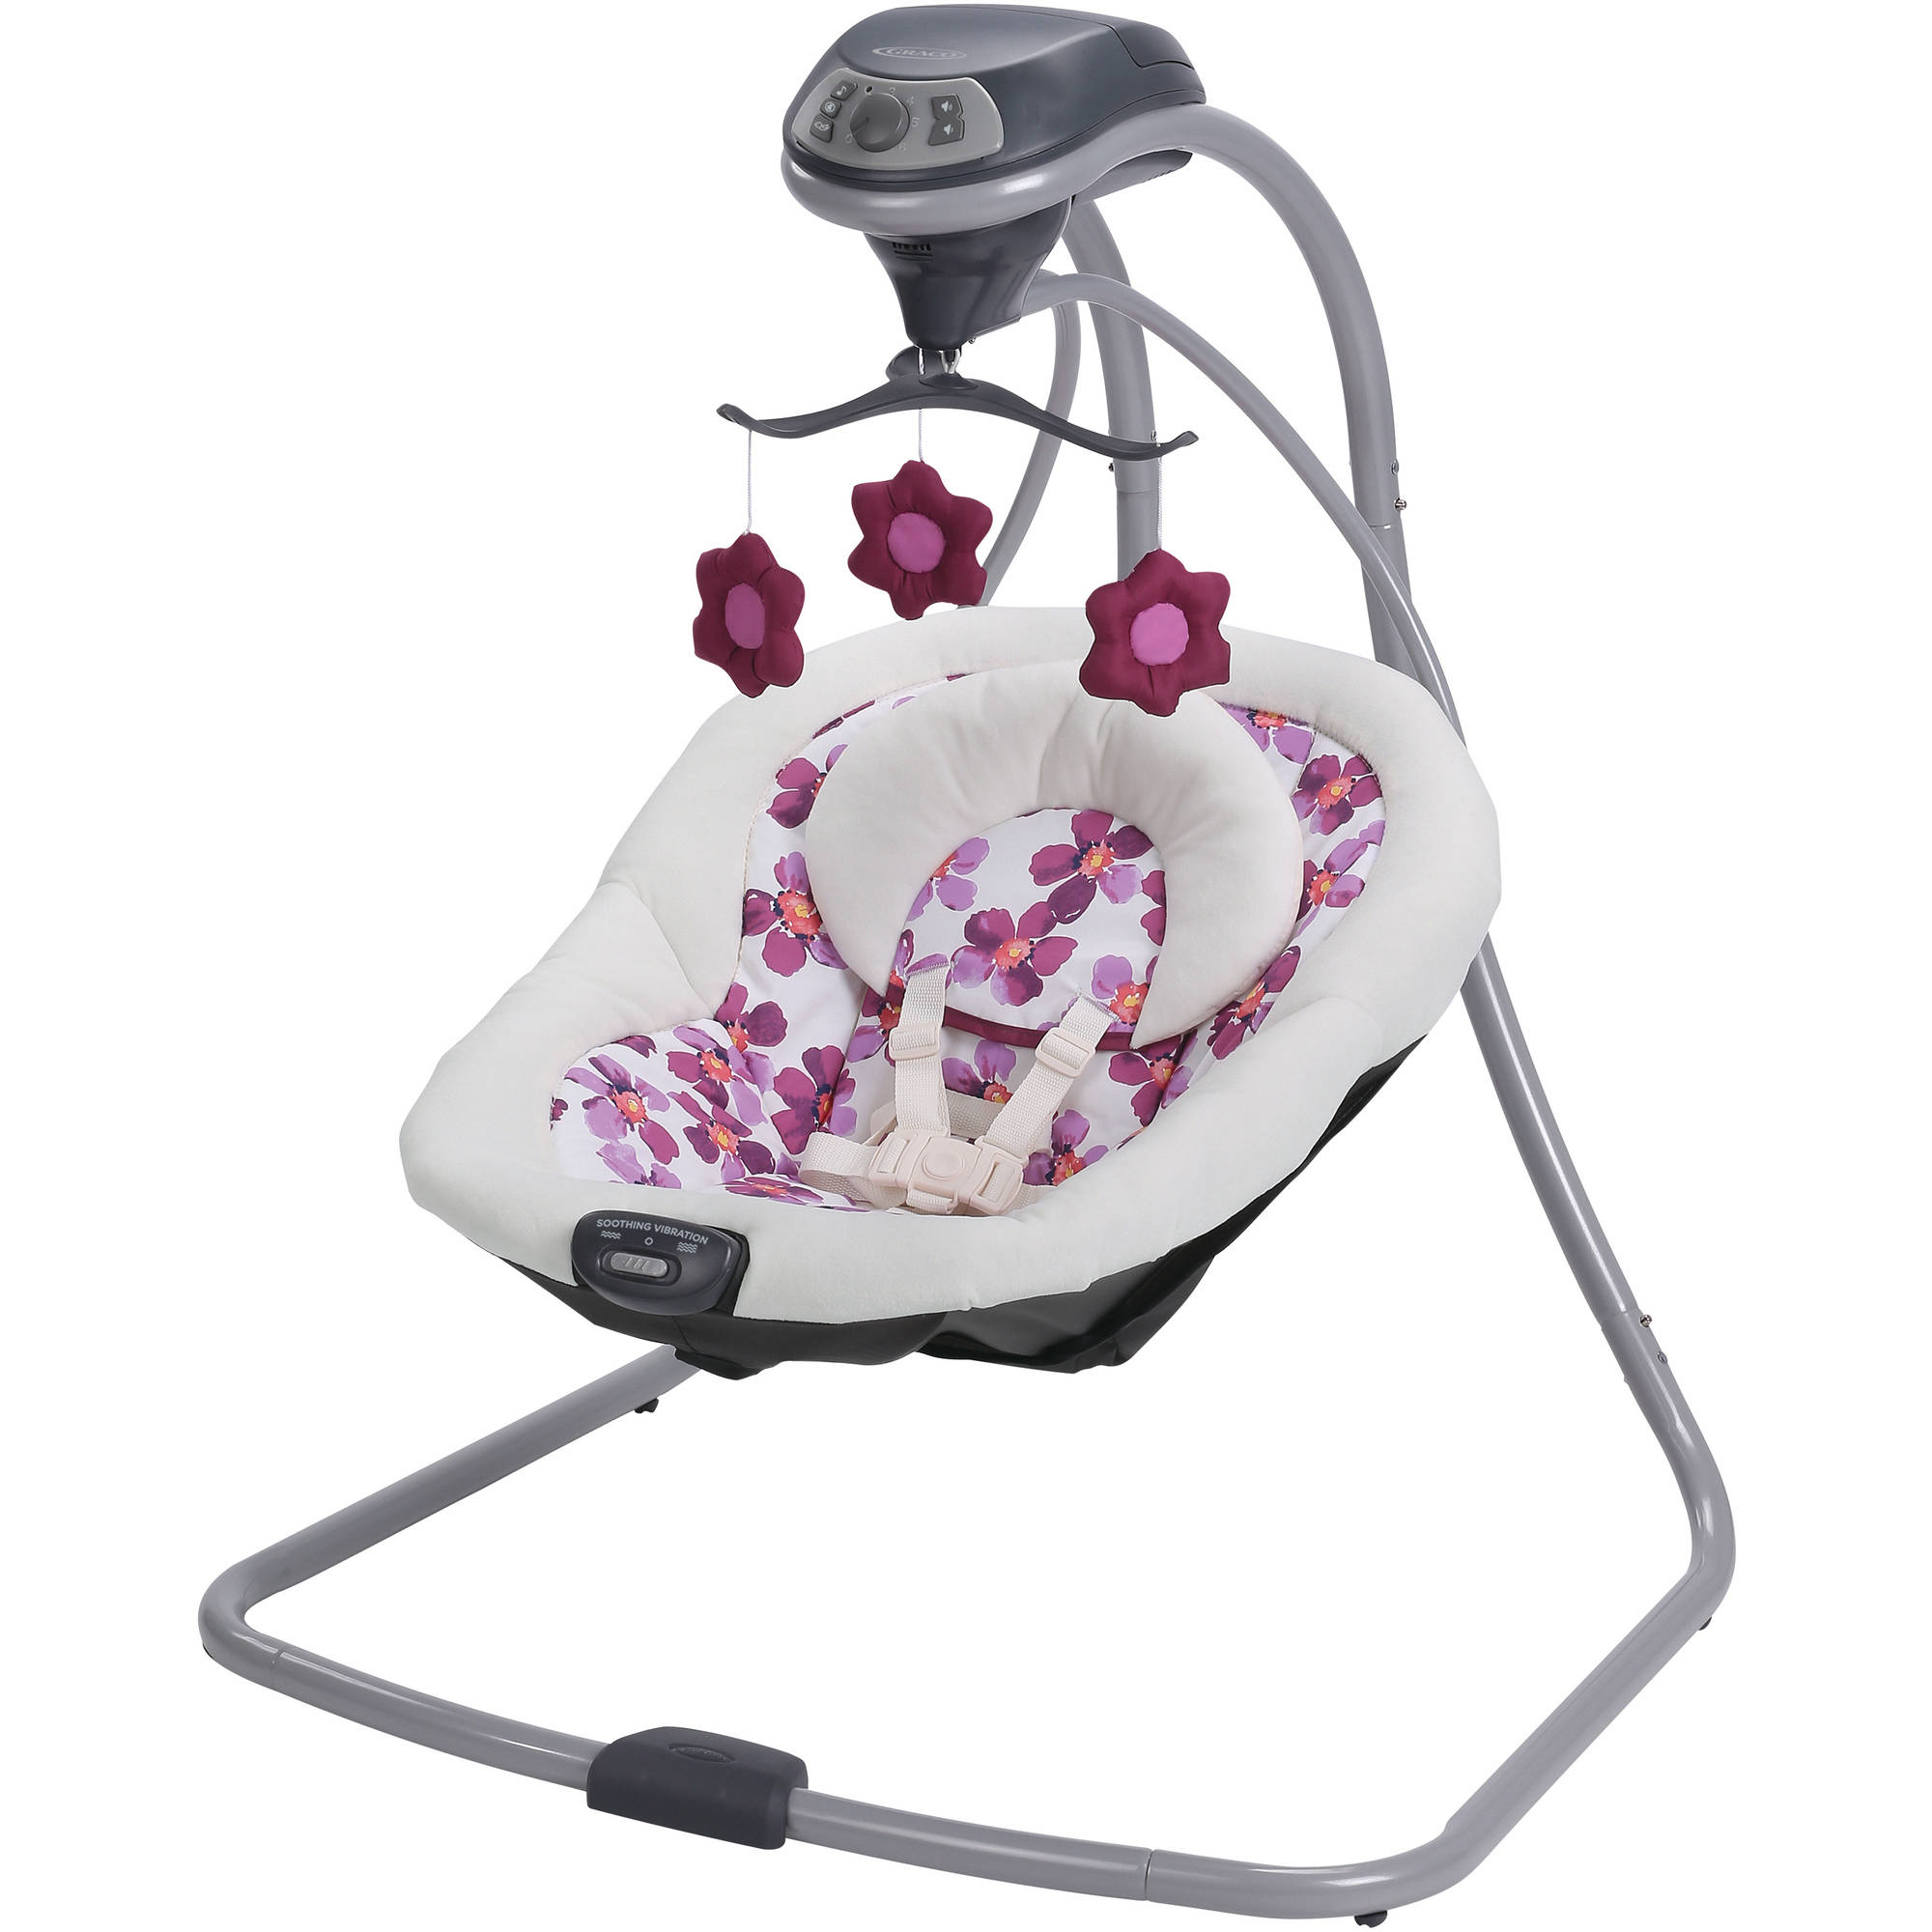 Graco Simple Sway Baby Swing, Caris